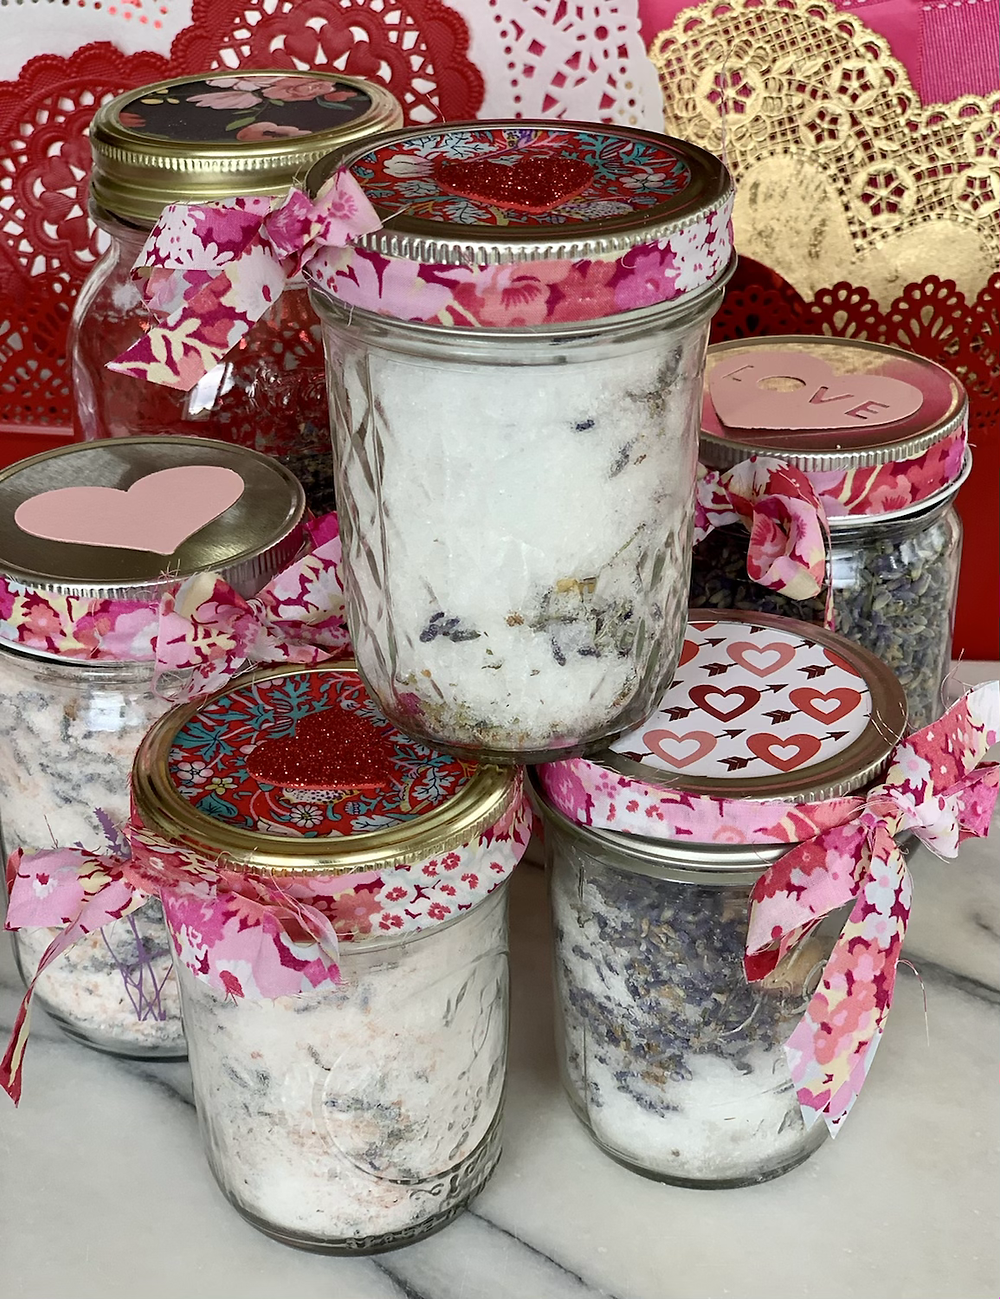 homemade bath salts with epsom salt, baking soda, sea salt and dried herbs for valentine's day gift